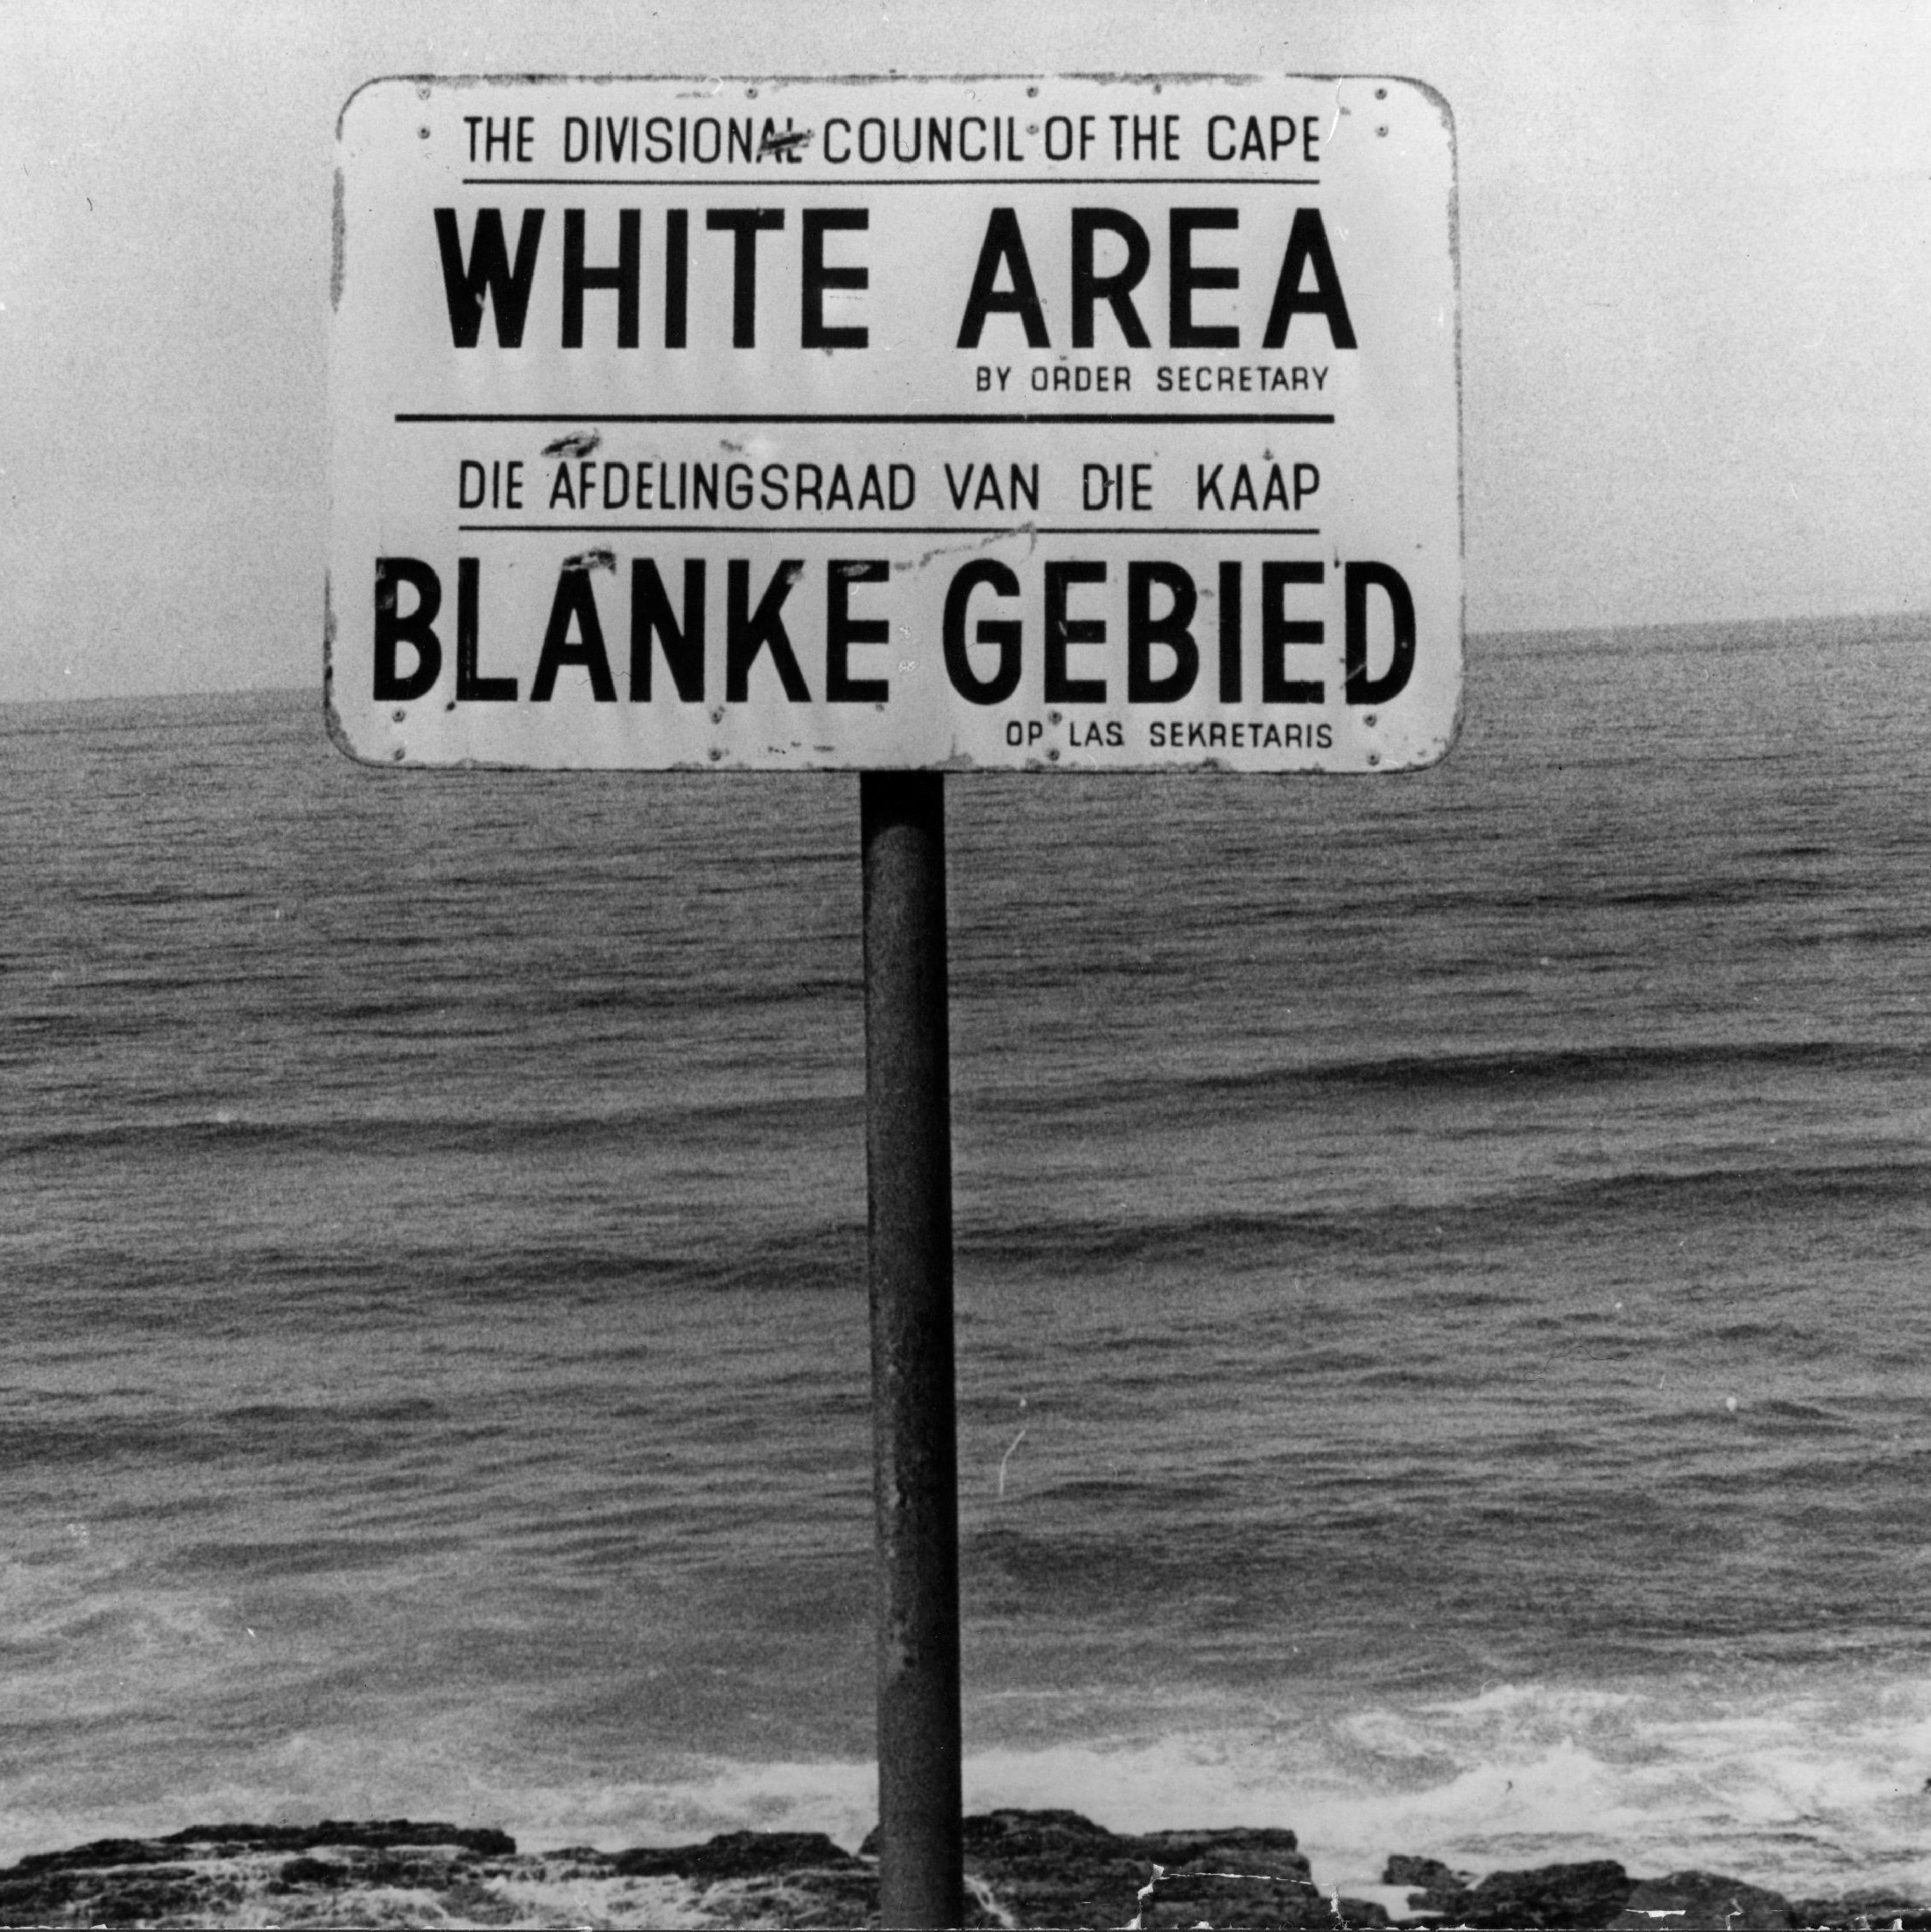 essay on apartheid in south africa South africa: from township to town after apartheid, spacial segregation remains.